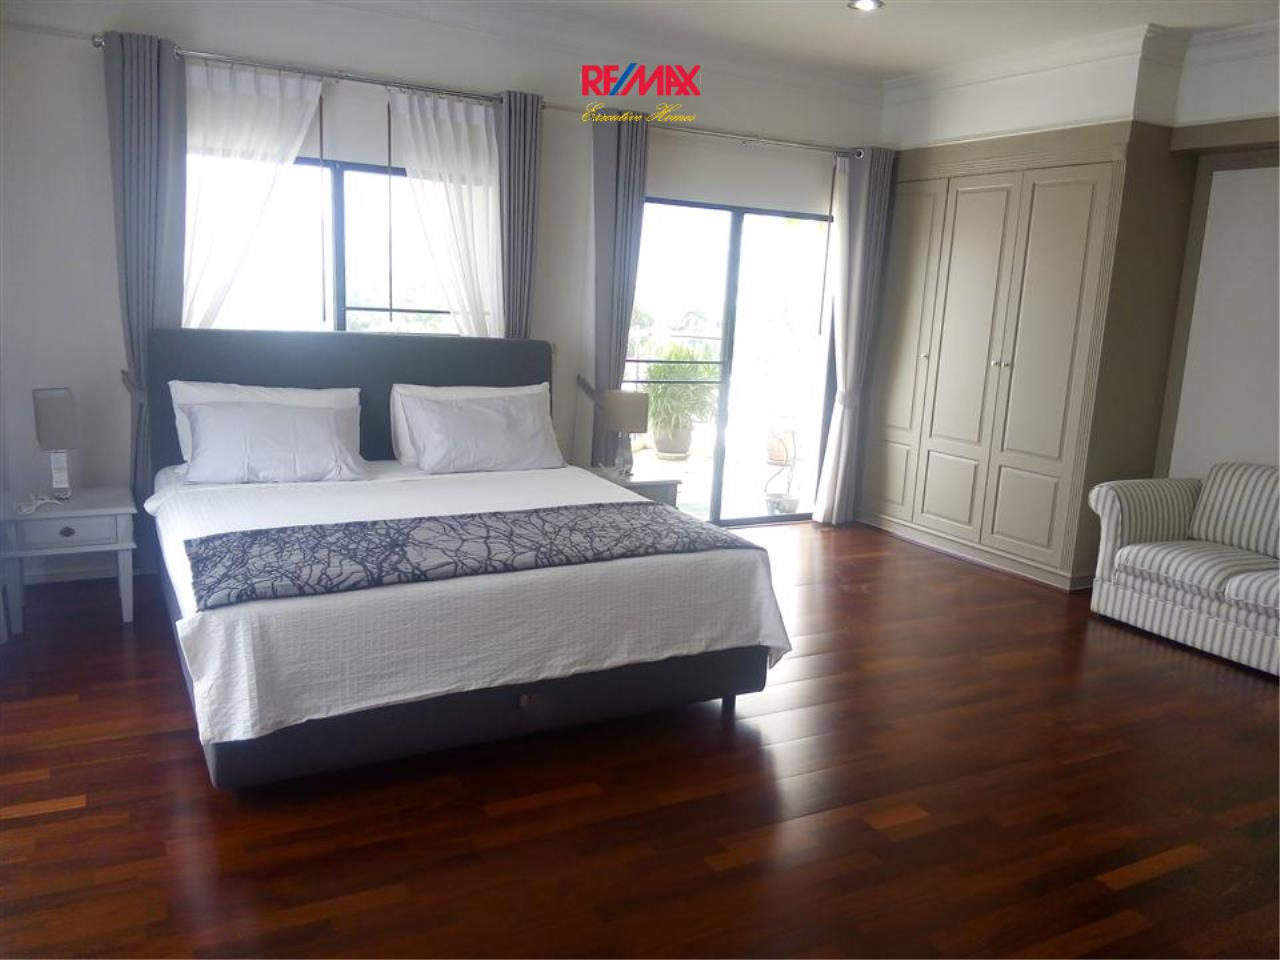 RE/MAX Executive Homes Agency's Nice 3 Bedroom for Rent Sathorn Crest 34